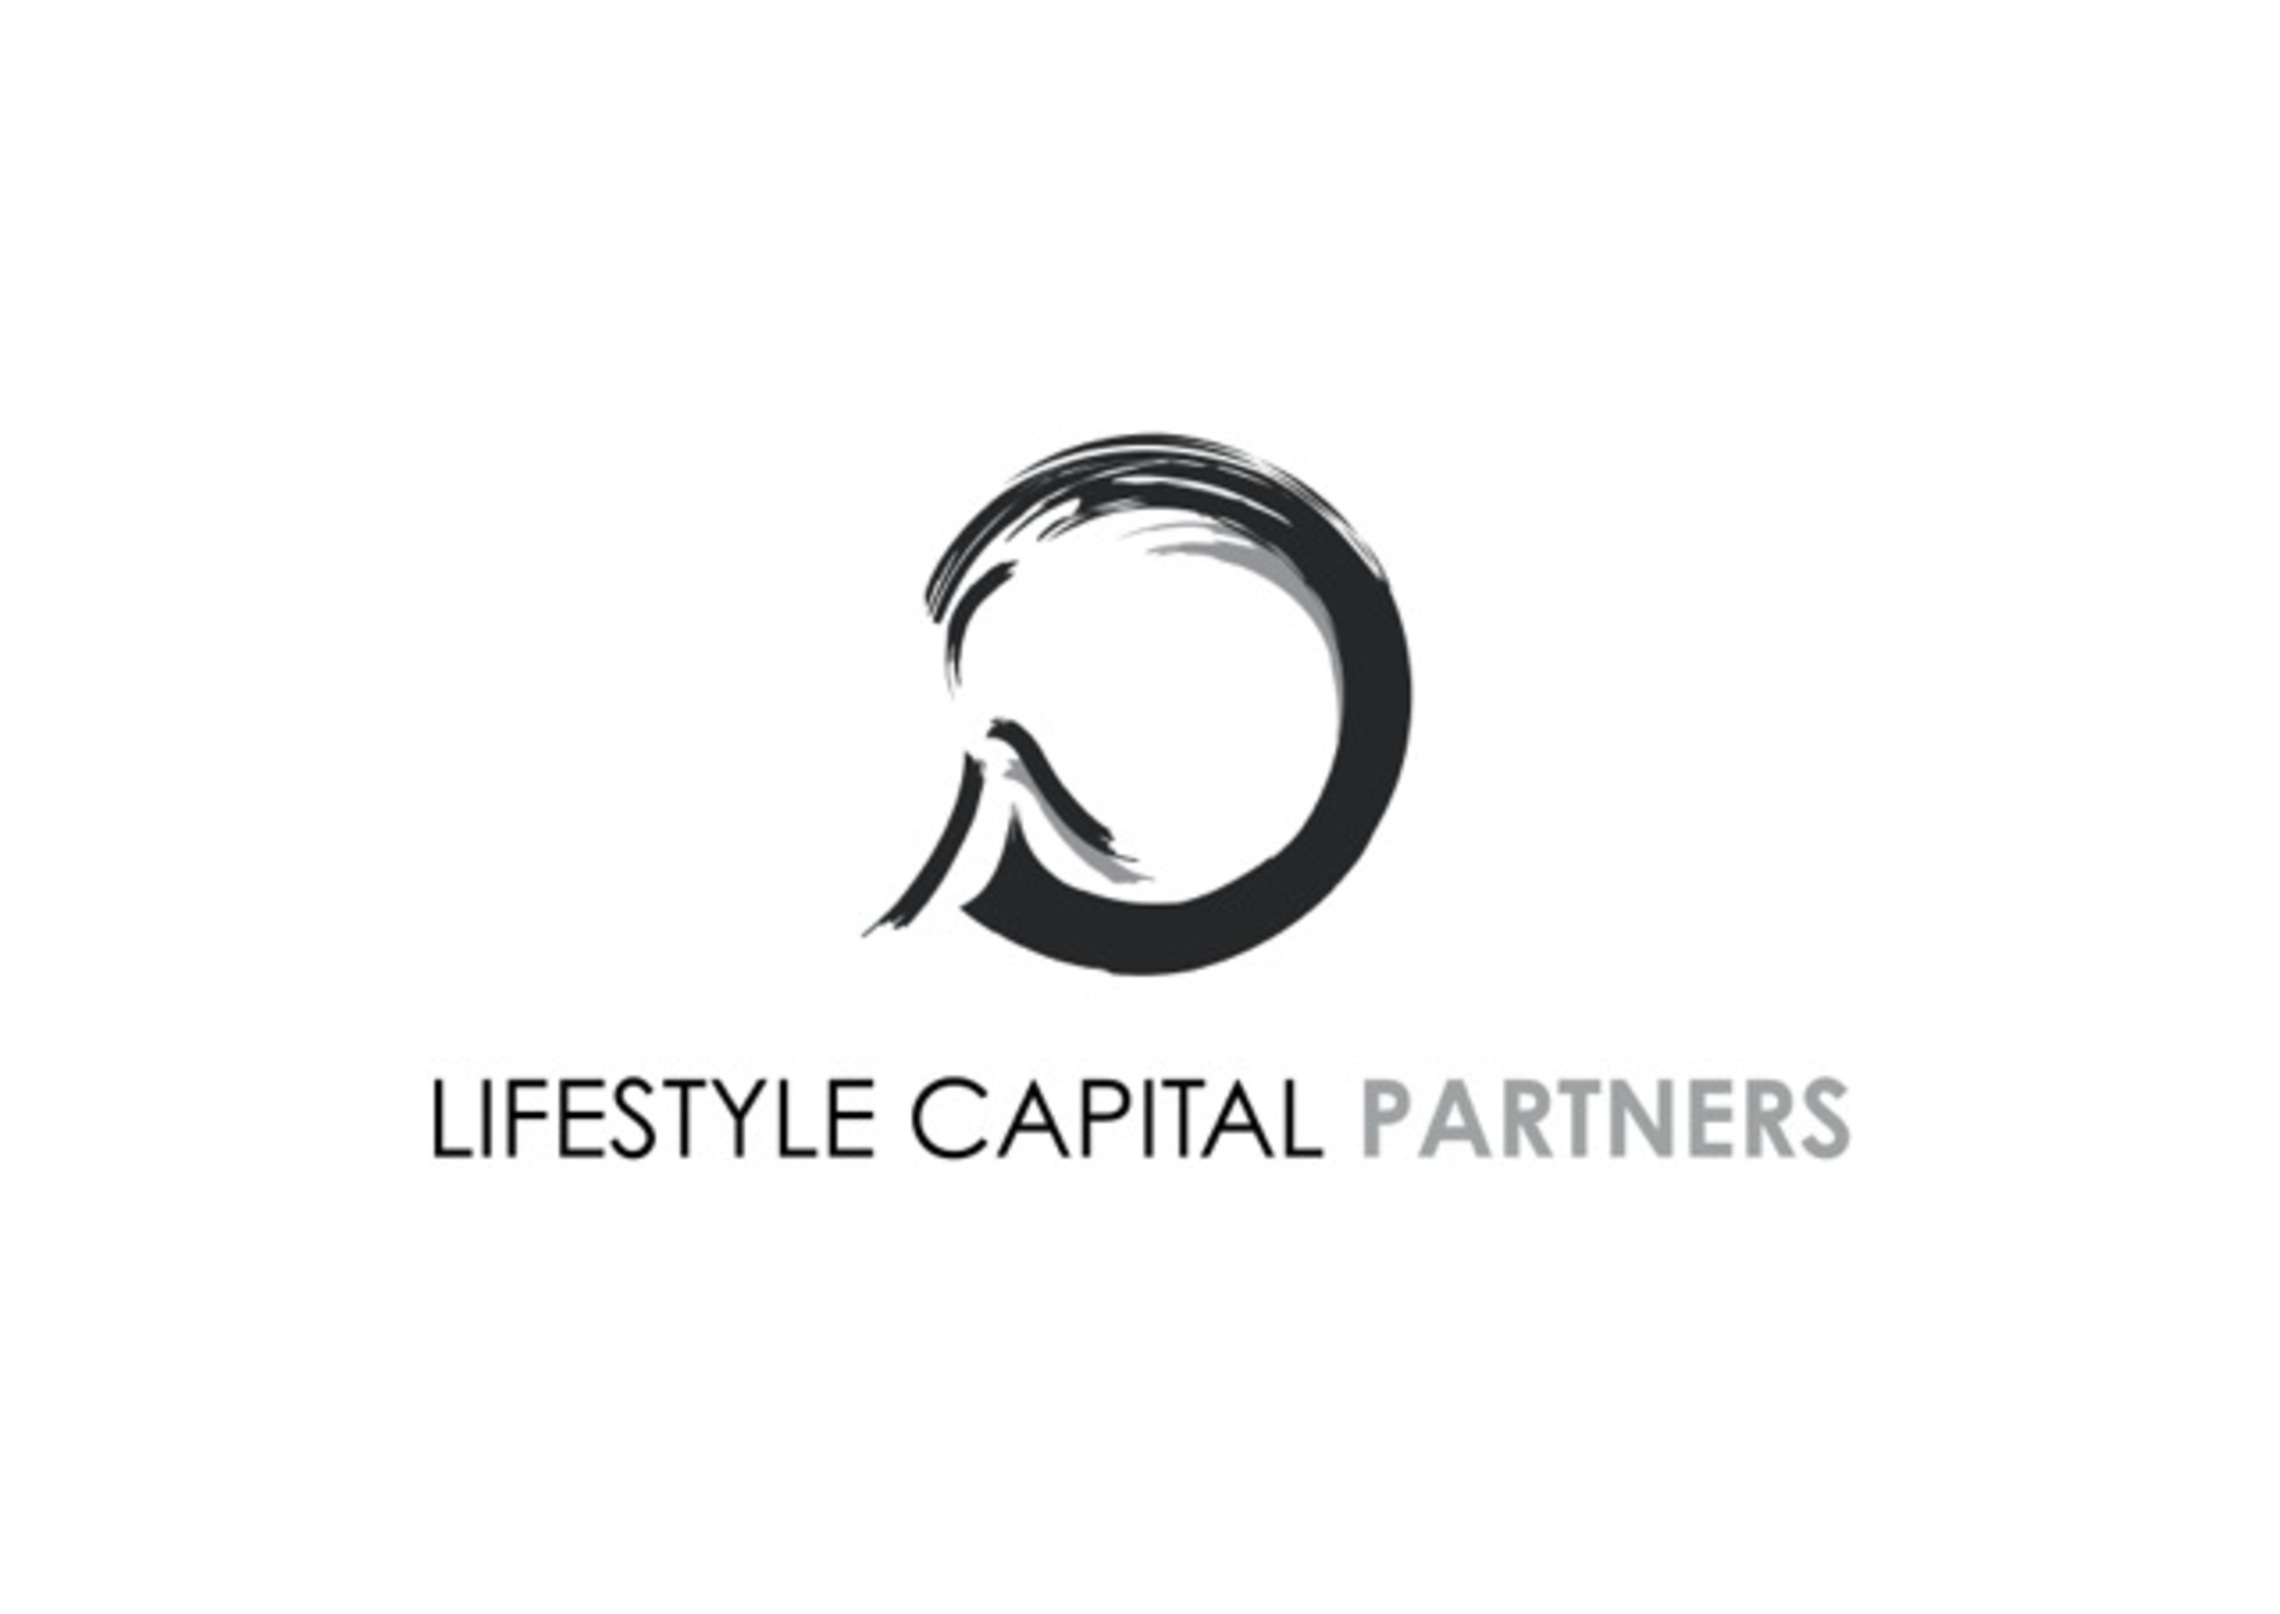 lifestyle capital partners- company logo